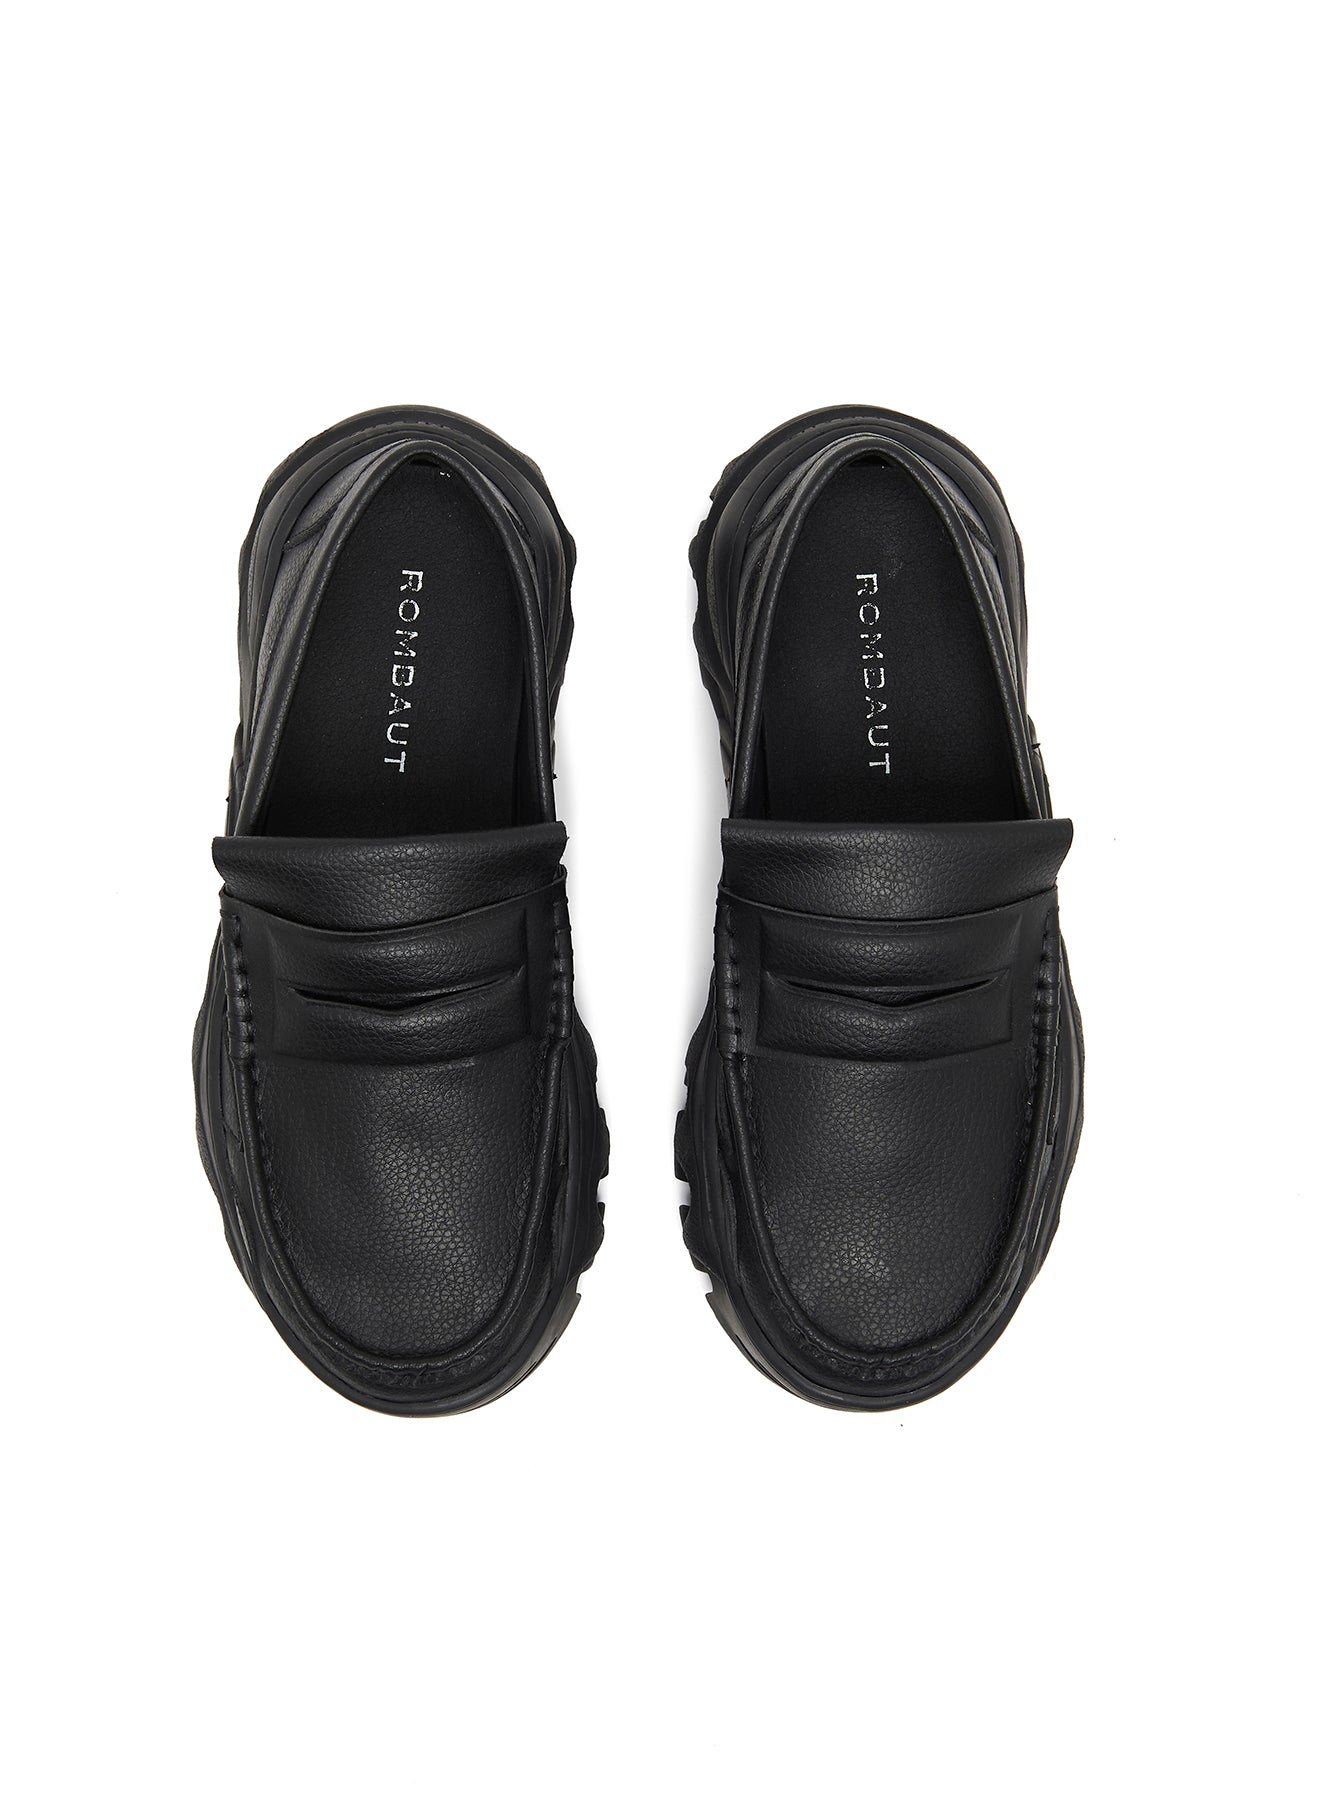 Rombaut Boccaccio ll Padded Loafer Dry Apple Leather Black